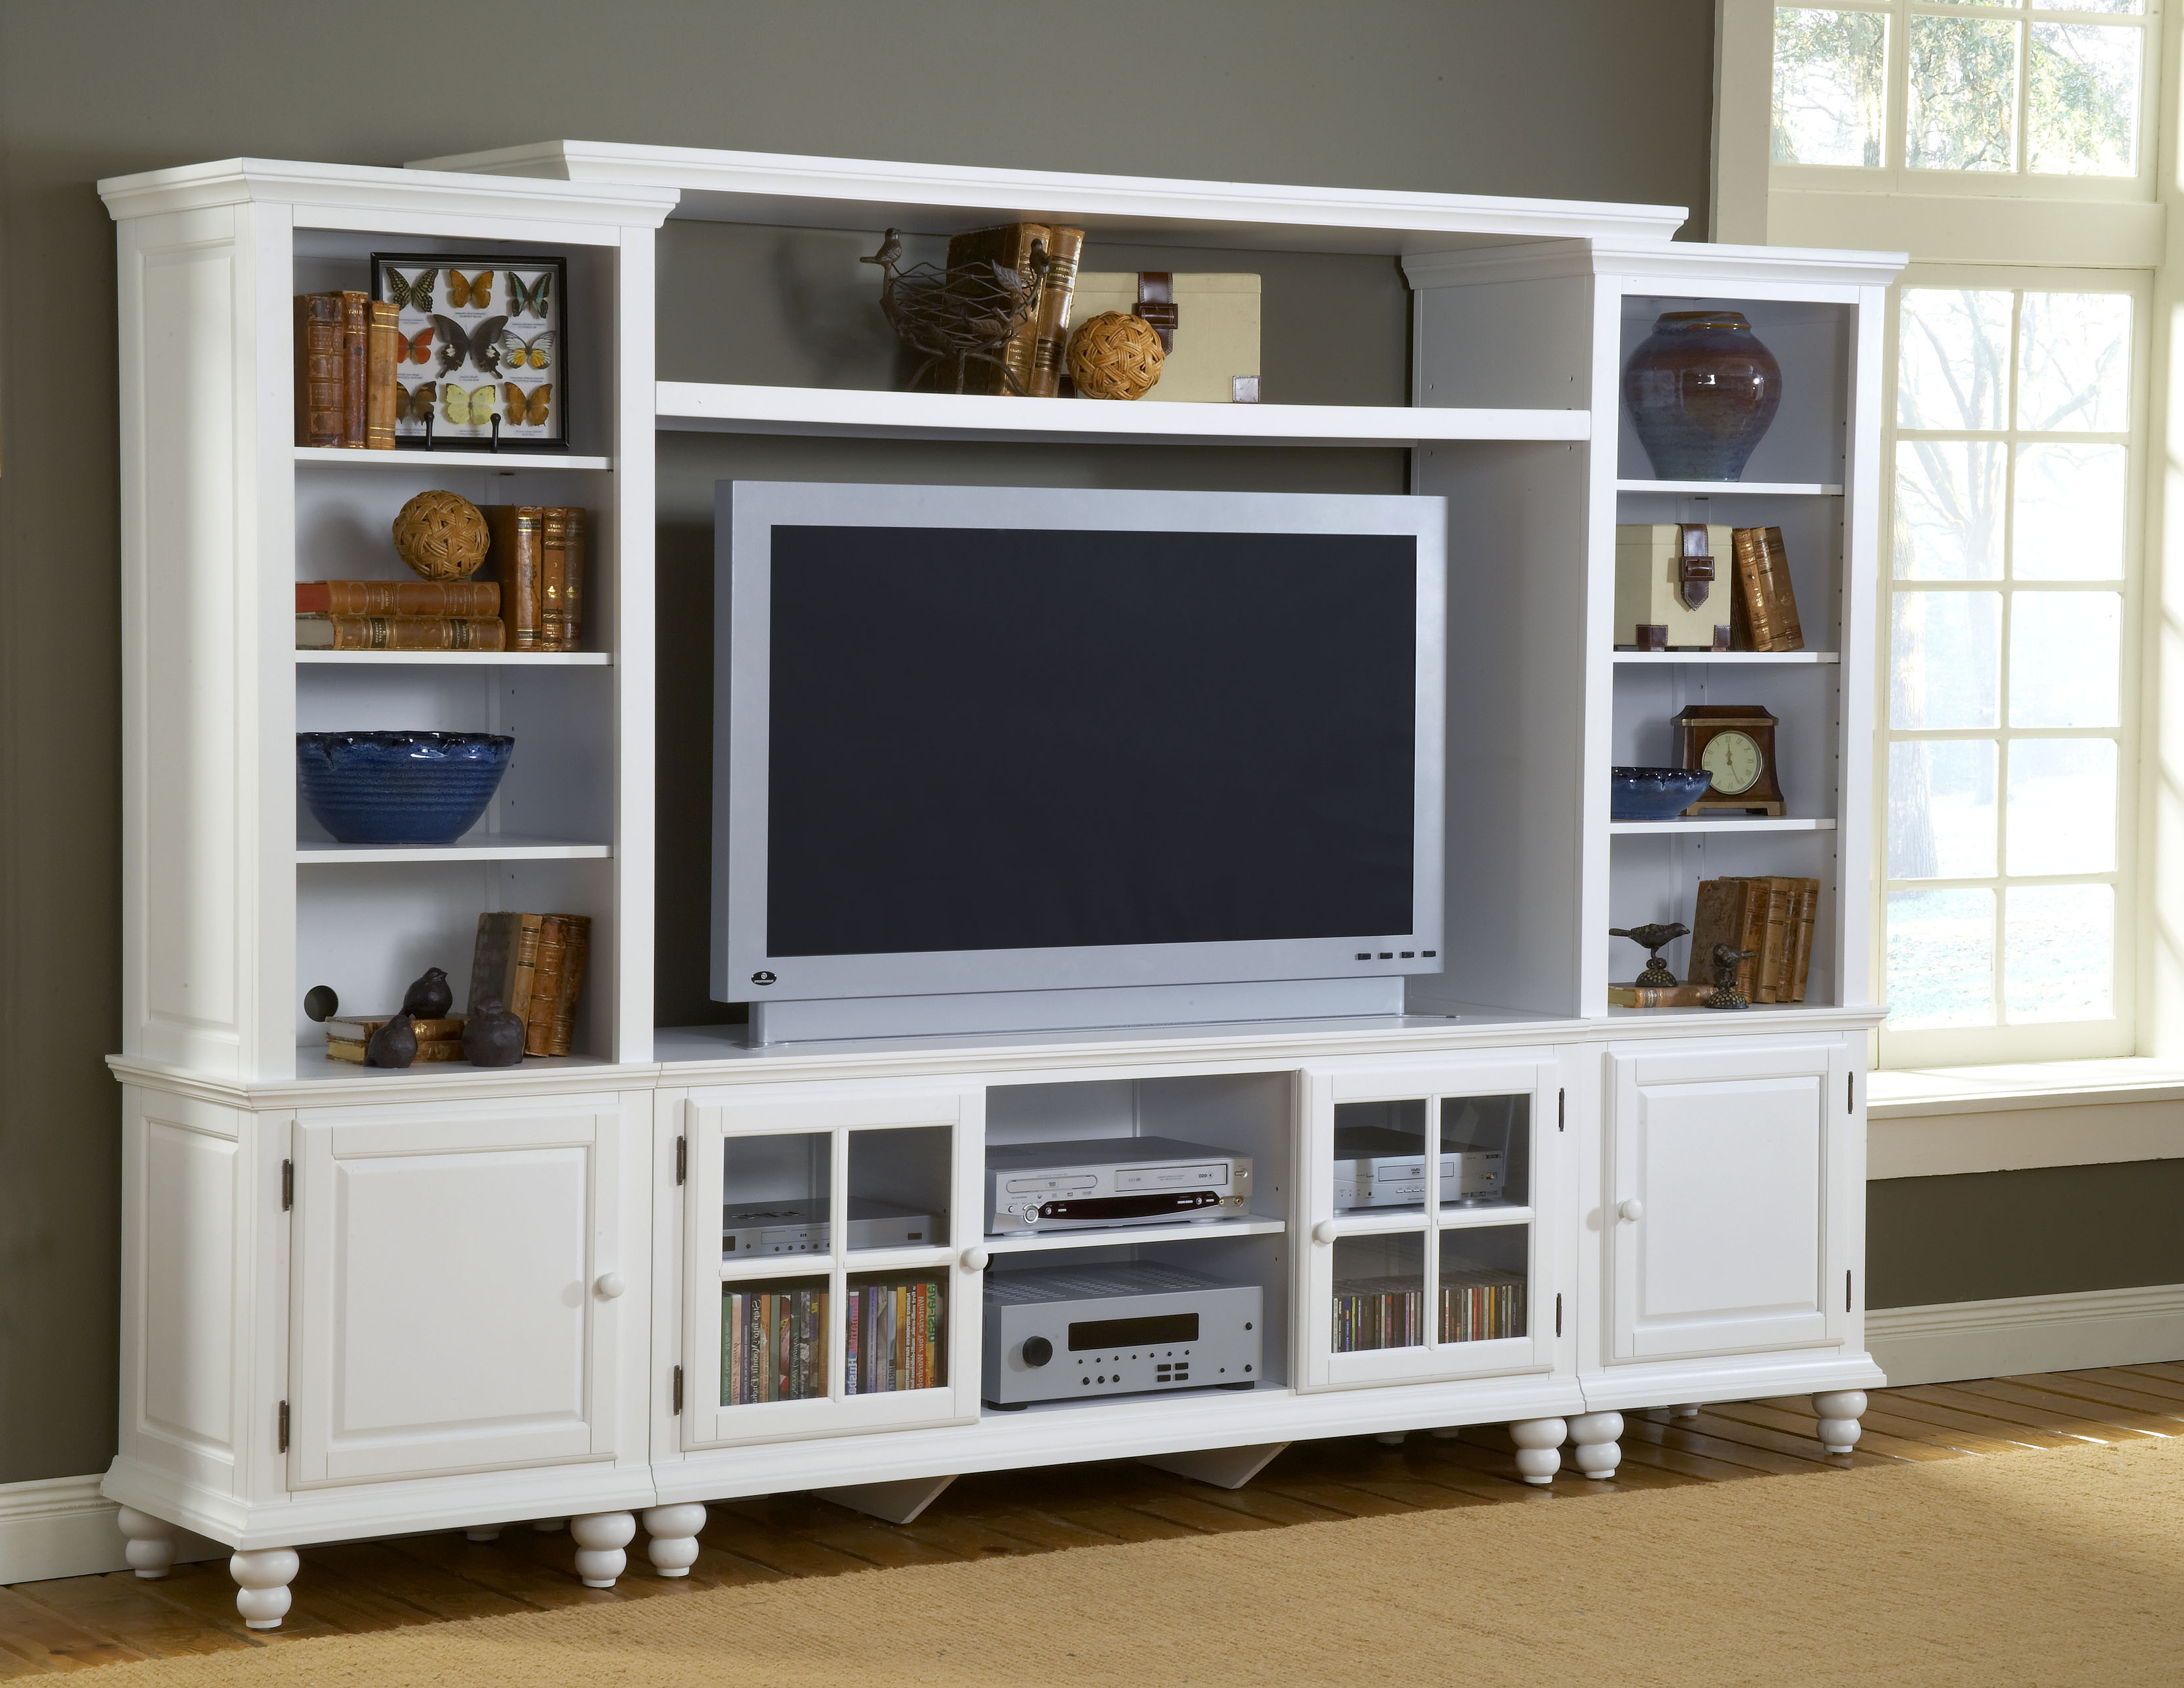 Large Tv Cabinets – Image Cabinets And Shower Mandra Tavern In Current Long White Tv Cabinets (Gallery 7 of 20)